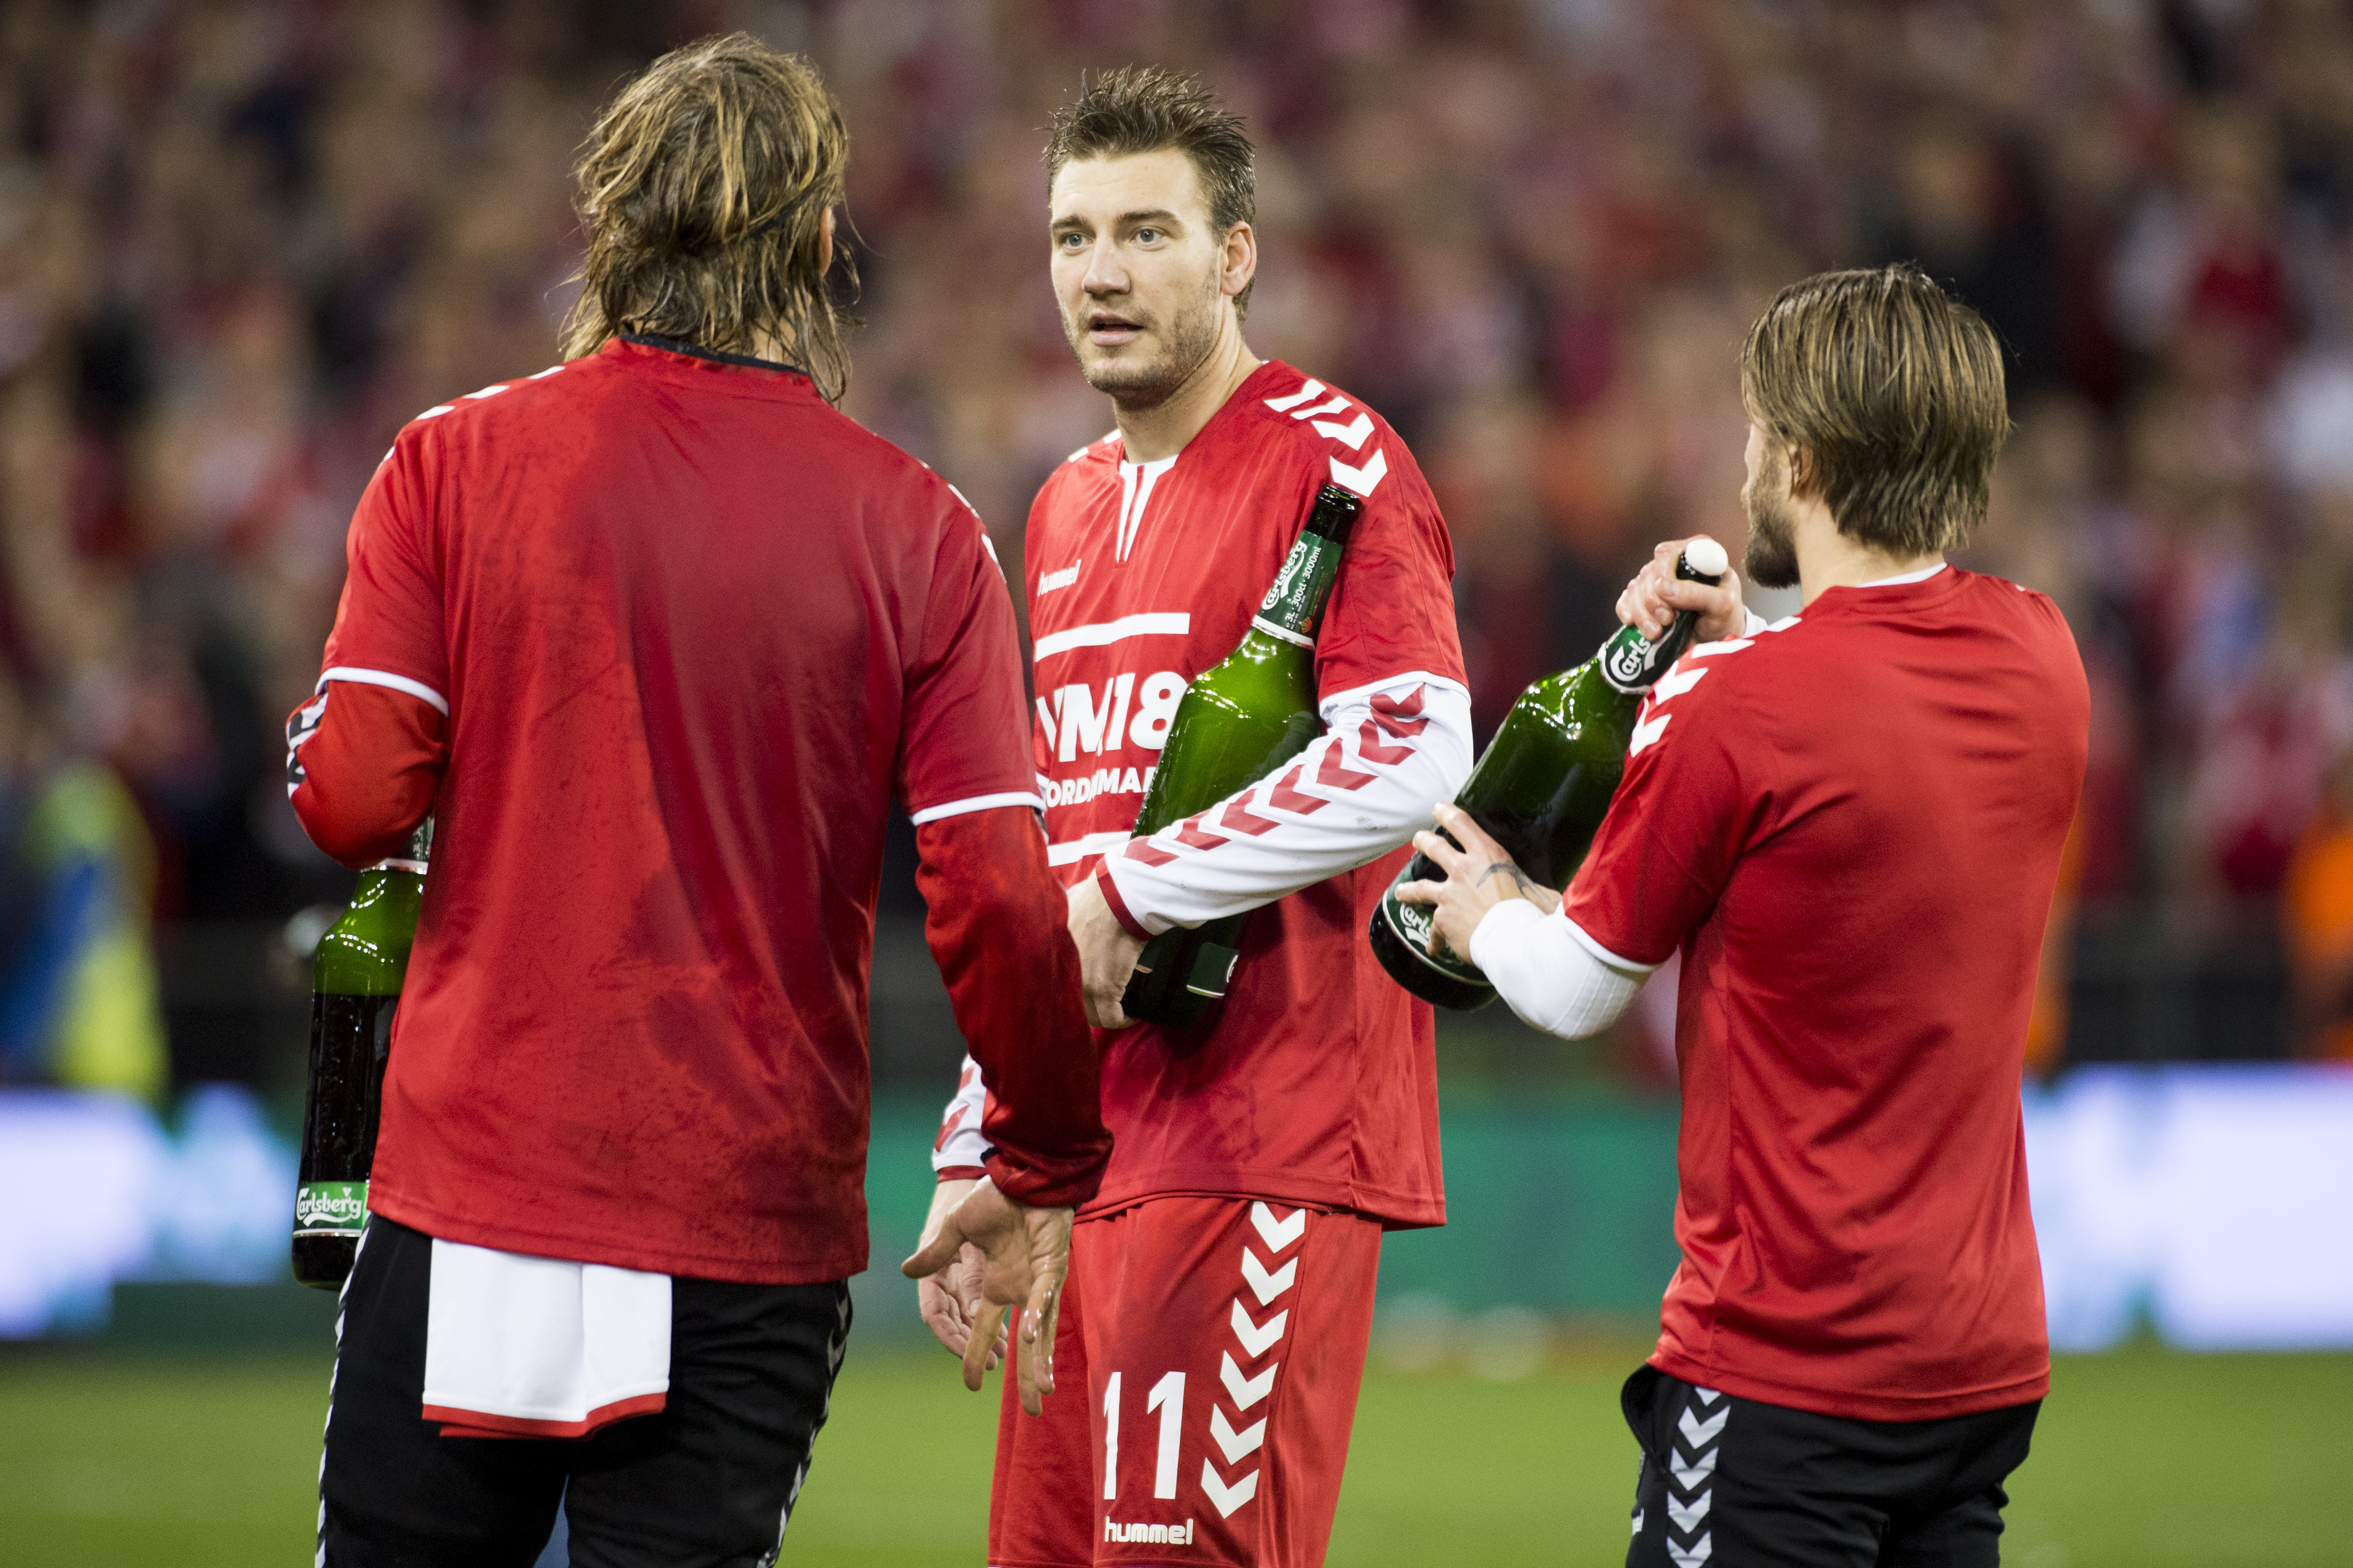 Nicklas Bendtner reportedly arrested after incident with taxi driver